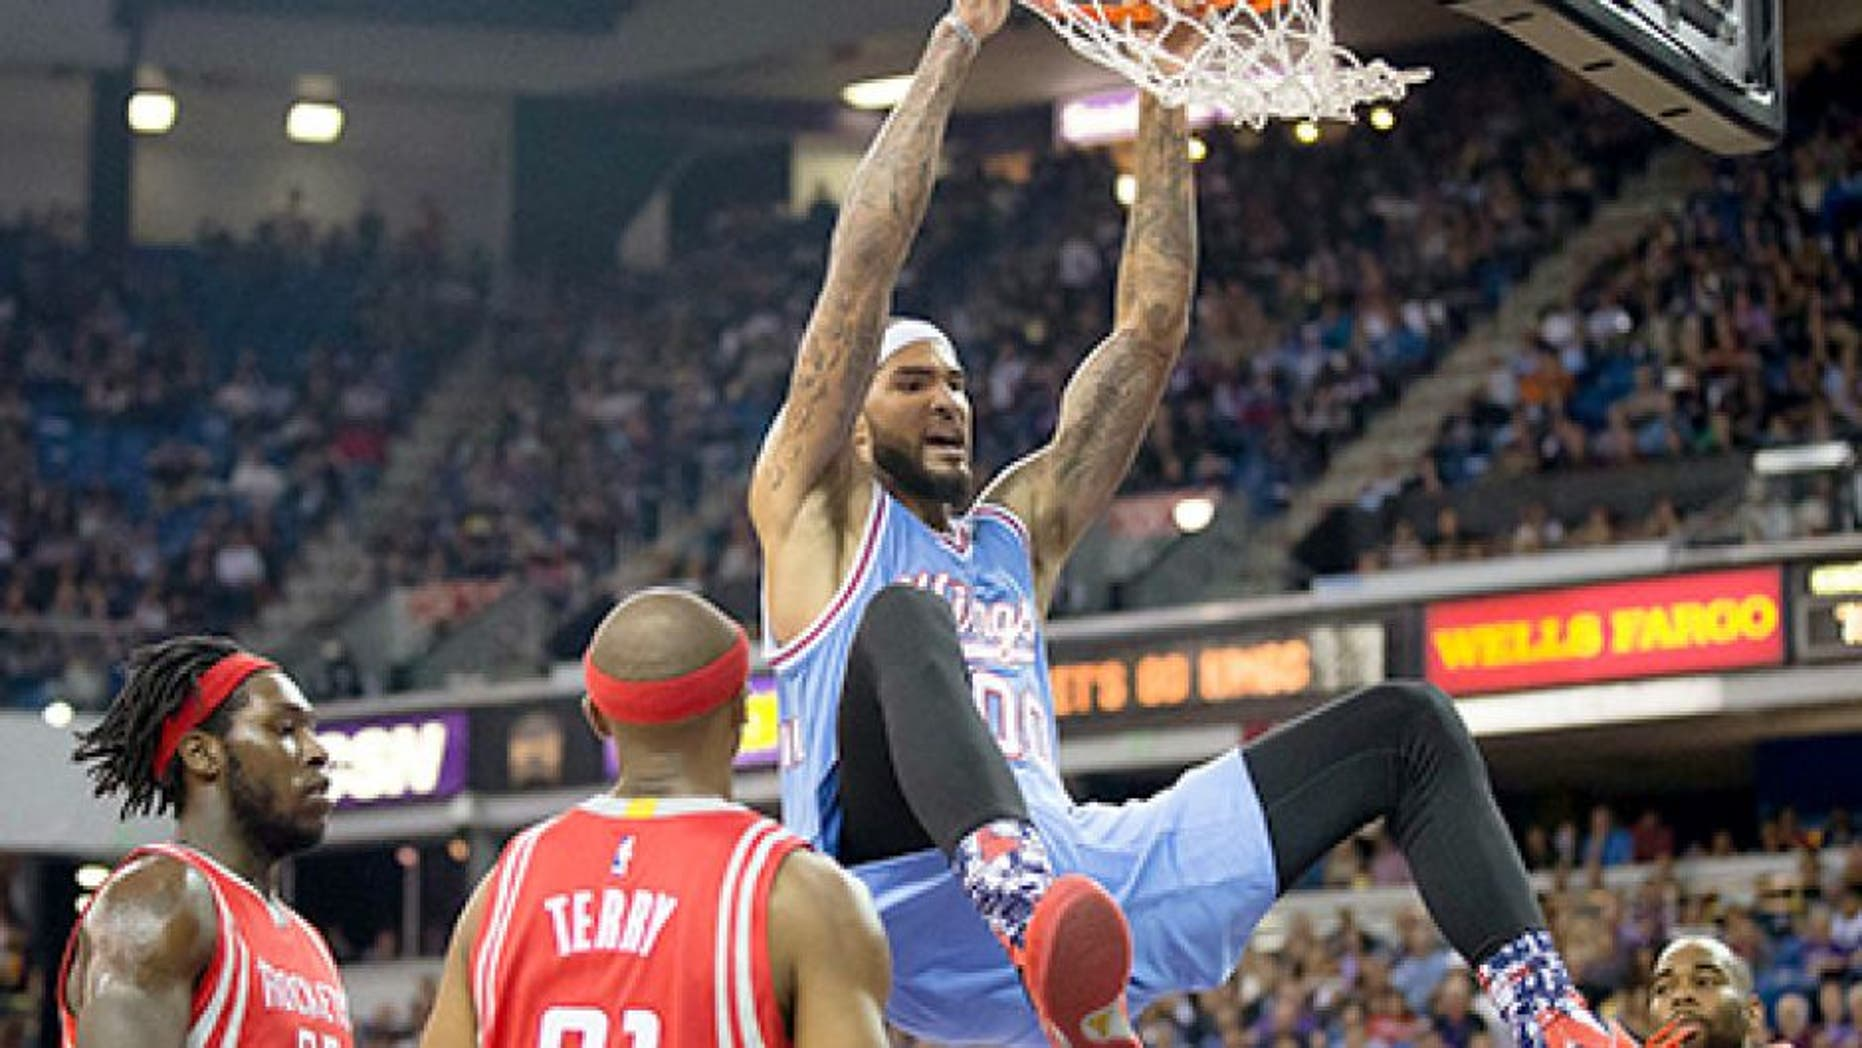 Nov 6, 2015; Sacramento, CA, USA; Sacramento Kings center Willie Cauley-Stein (00) reacts above Houston Rockets forward Montrezl Harrell (35), guard Jason Terry (31) and guard Marcus Thornton (10) after a dunk during the third quarter at Sleep Train Arena. The Houston Rockets defeated the Sacramento Kings 116-110. Mandatory Credit: Kelley L Cox-USA TODAY Sports